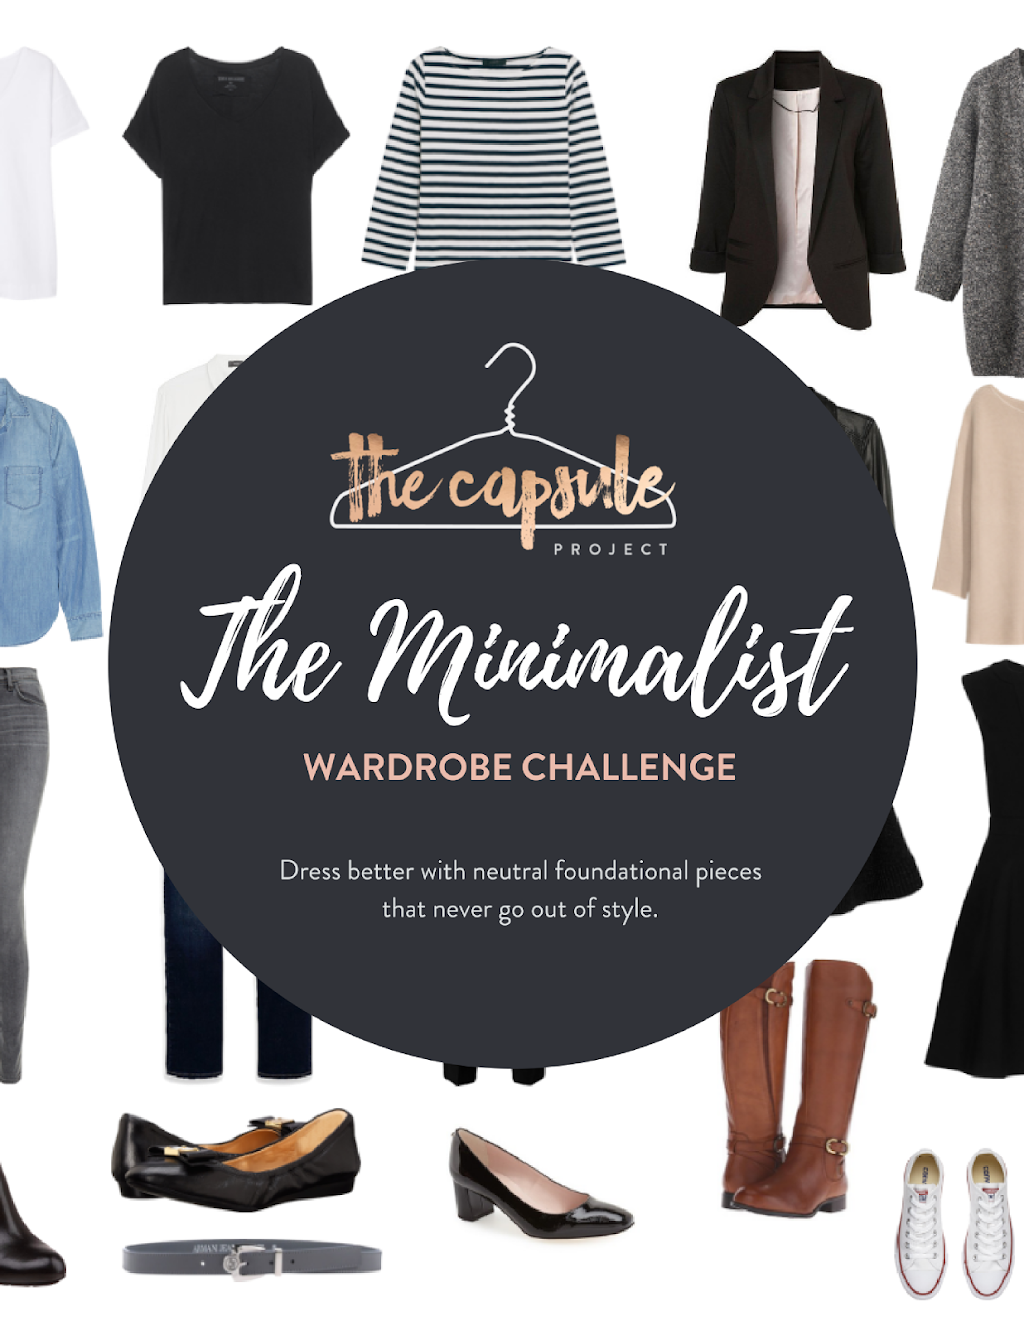 Get a detailed checklist and guide to create your own Minimalist Wardrobe Challenge